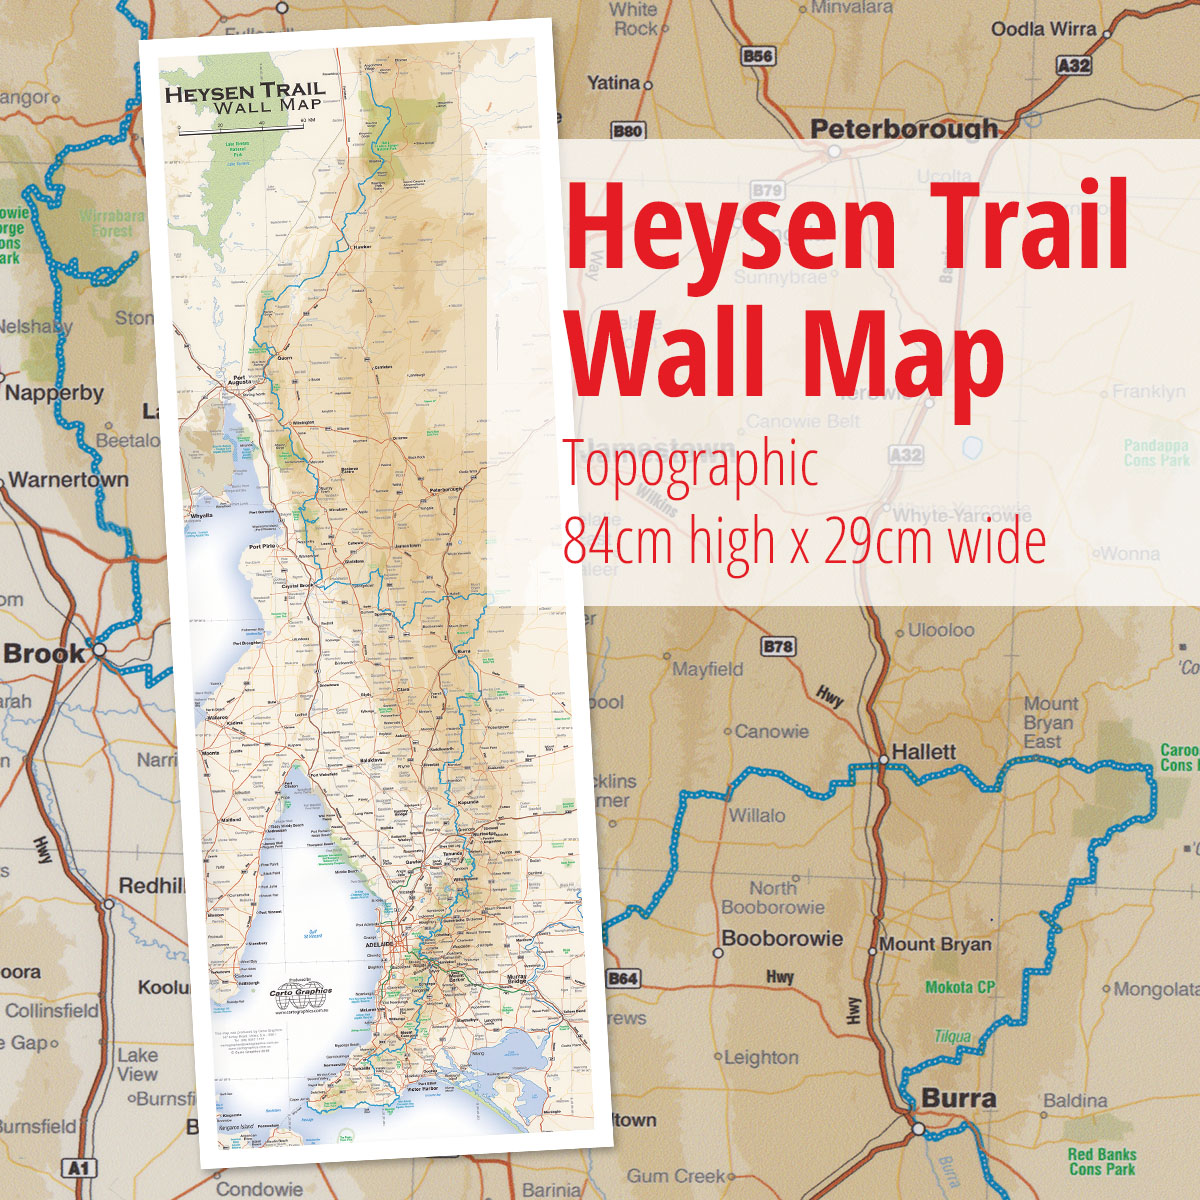 Heysen Trail overview wall map | The Friends of the Heysen Trail